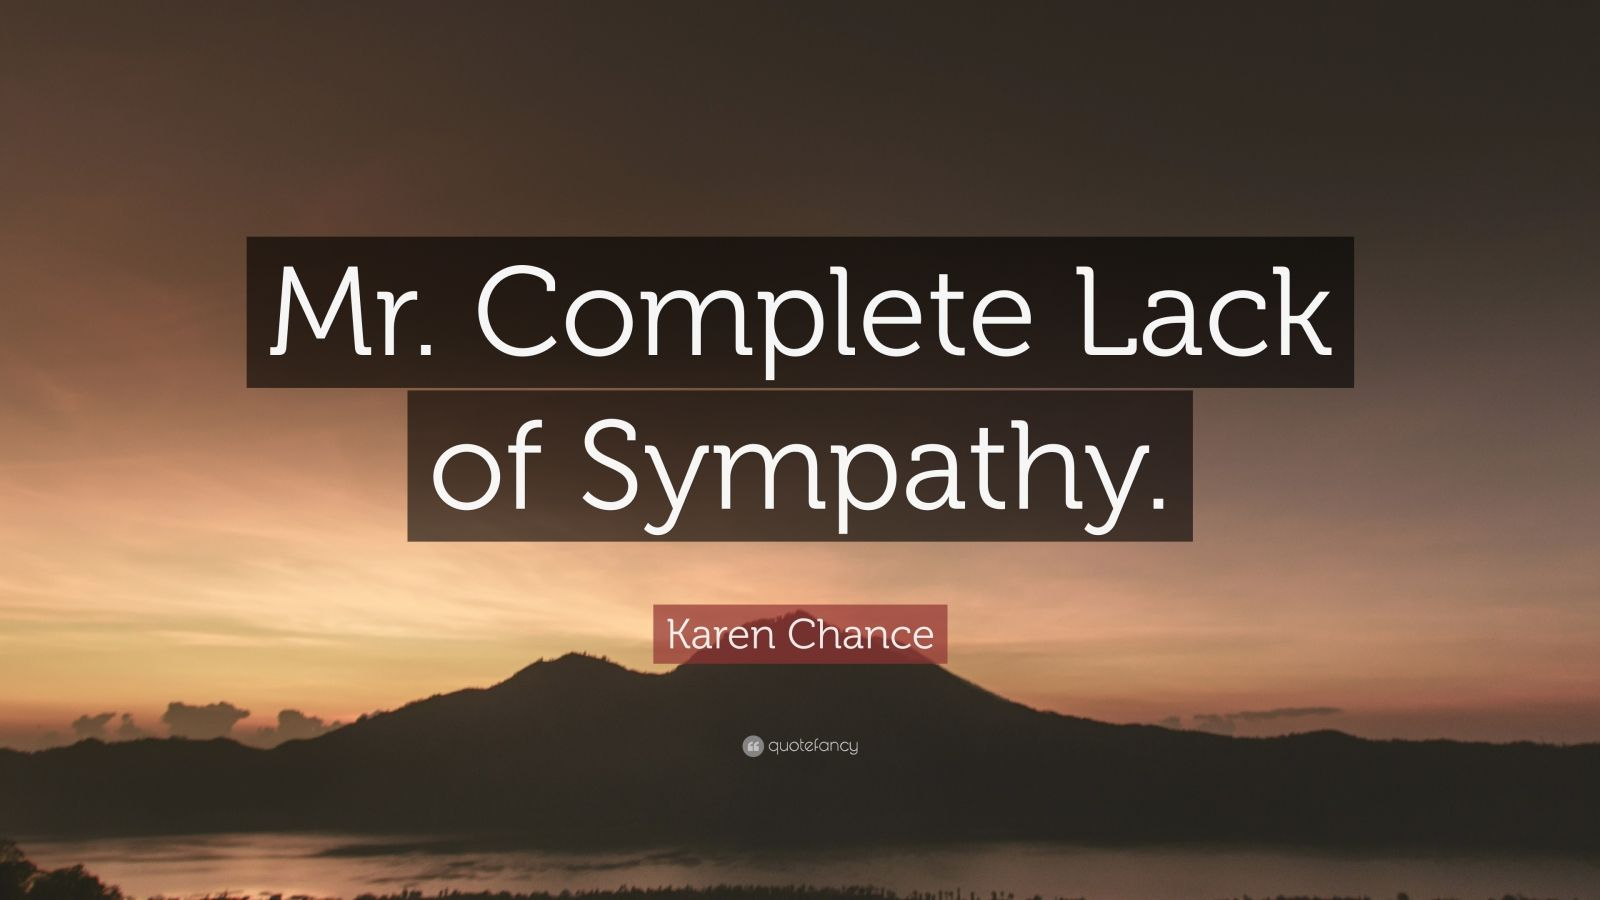 Karen chance quote mr complete lack of sympathy 7 wallpapers karen chance quote mr complete lack of sympathy thecheapjerseys Gallery